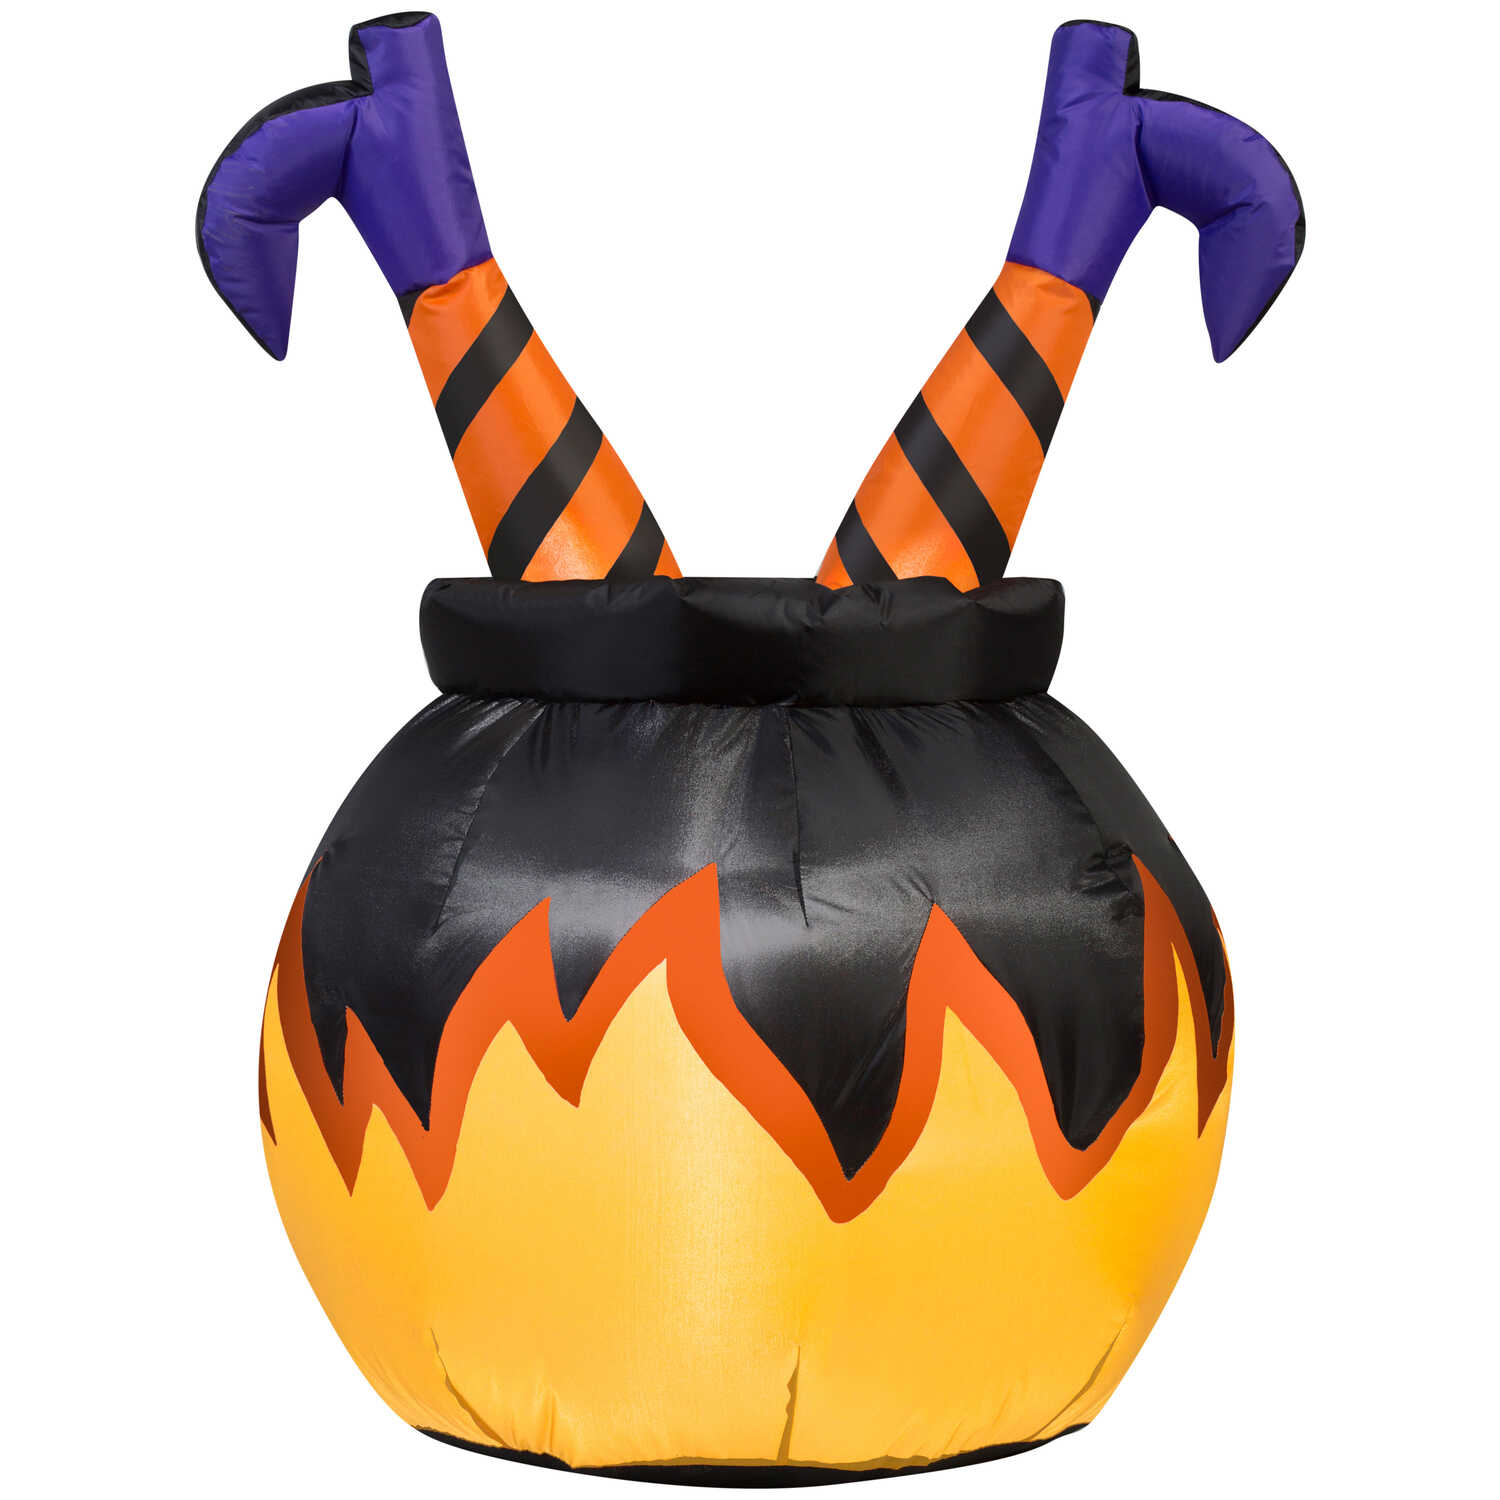 Gemmy  Witch Legs in Cauldron  Halloween Inflatable  36 in. H x 23.622 in. W x 27.56 in. L 1 pk